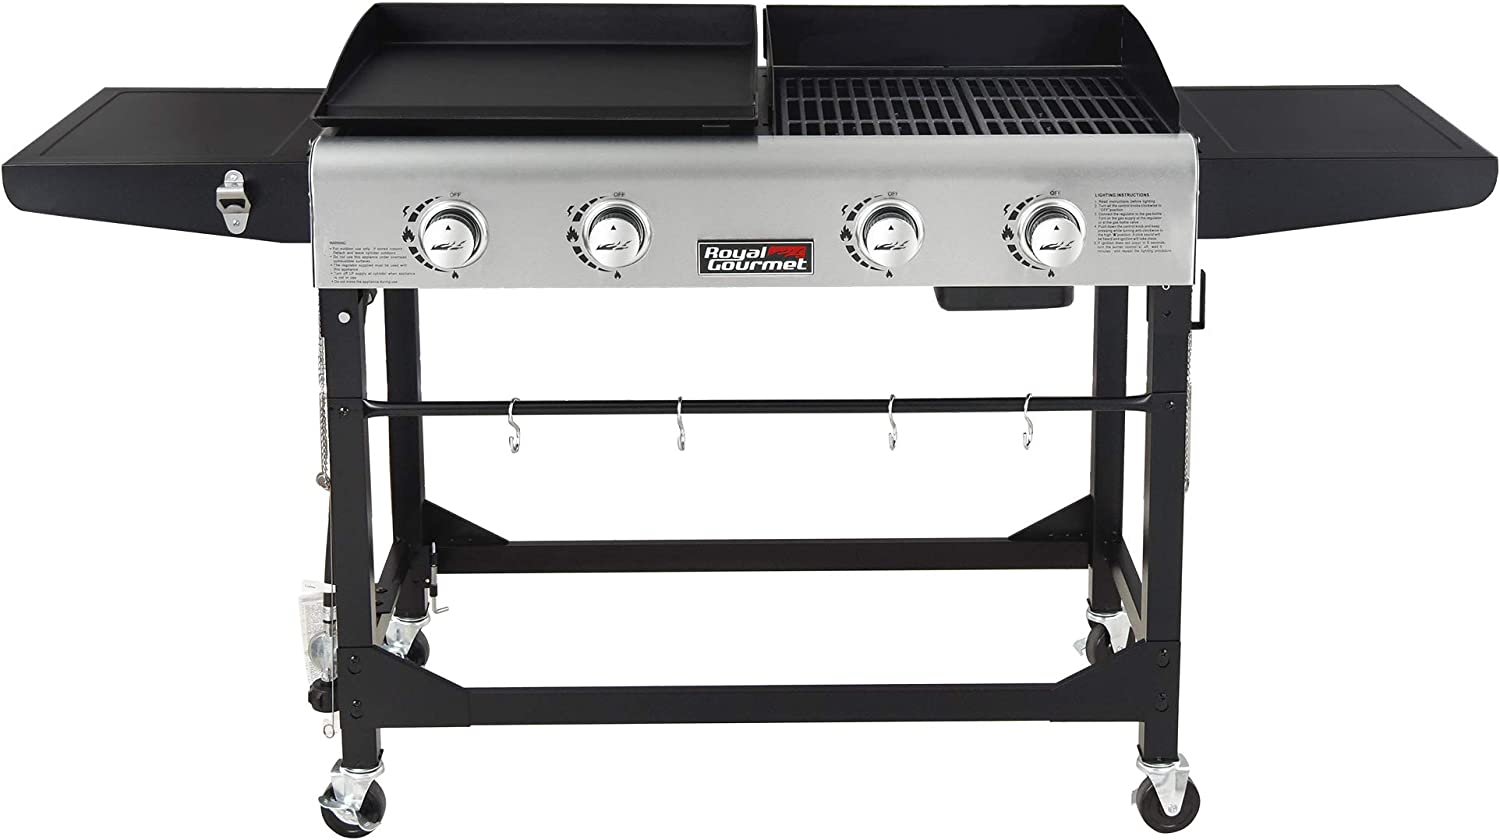 Royal Gourmet Portable Grill and Griddle Combo